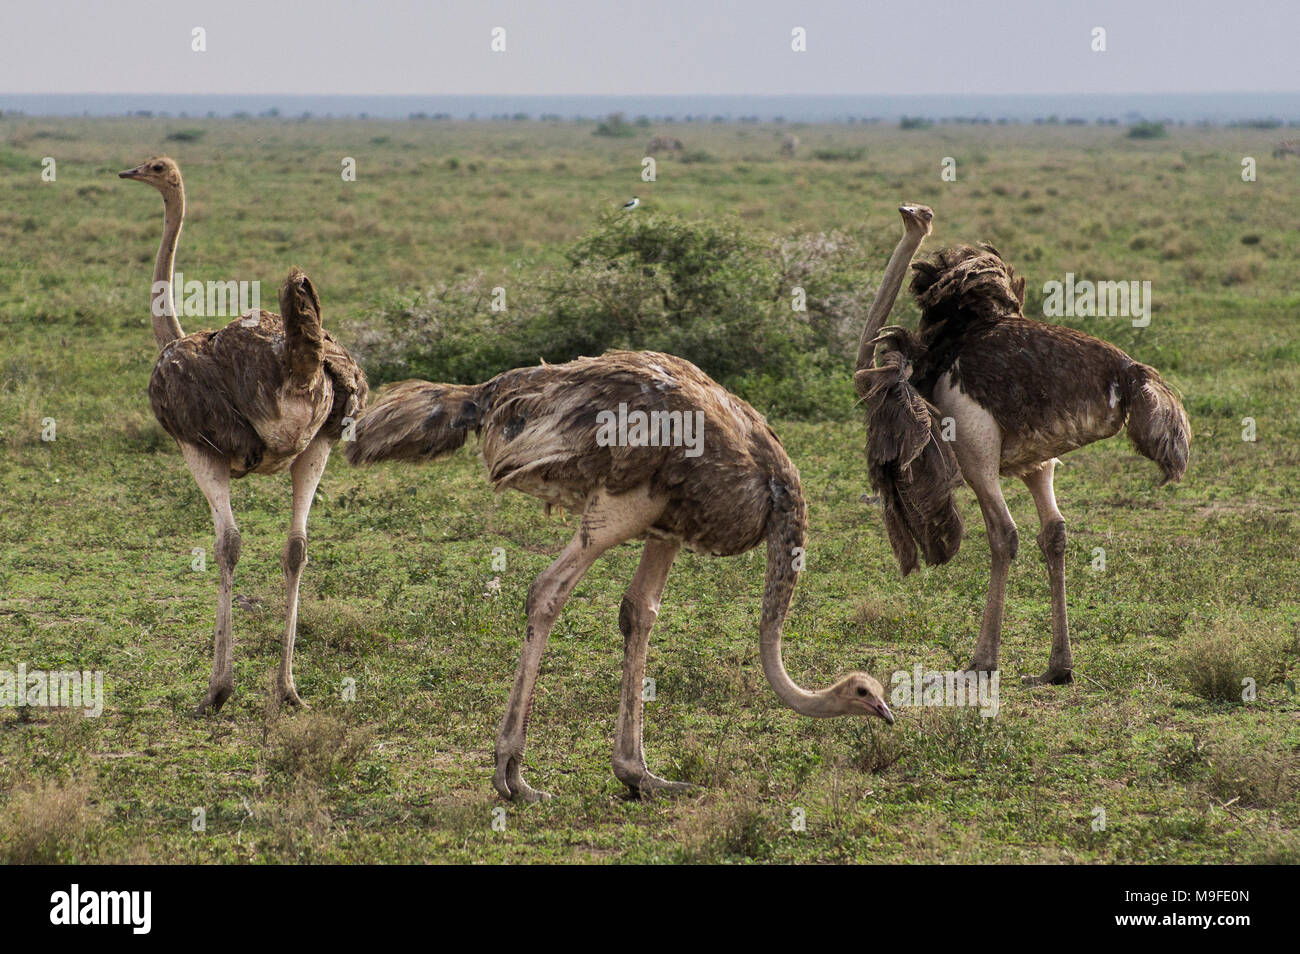 A small flock of three ostriches on the plains of the Serengei in Northern Tanzania, Africa on a sunny day with blue skies - Stock Image